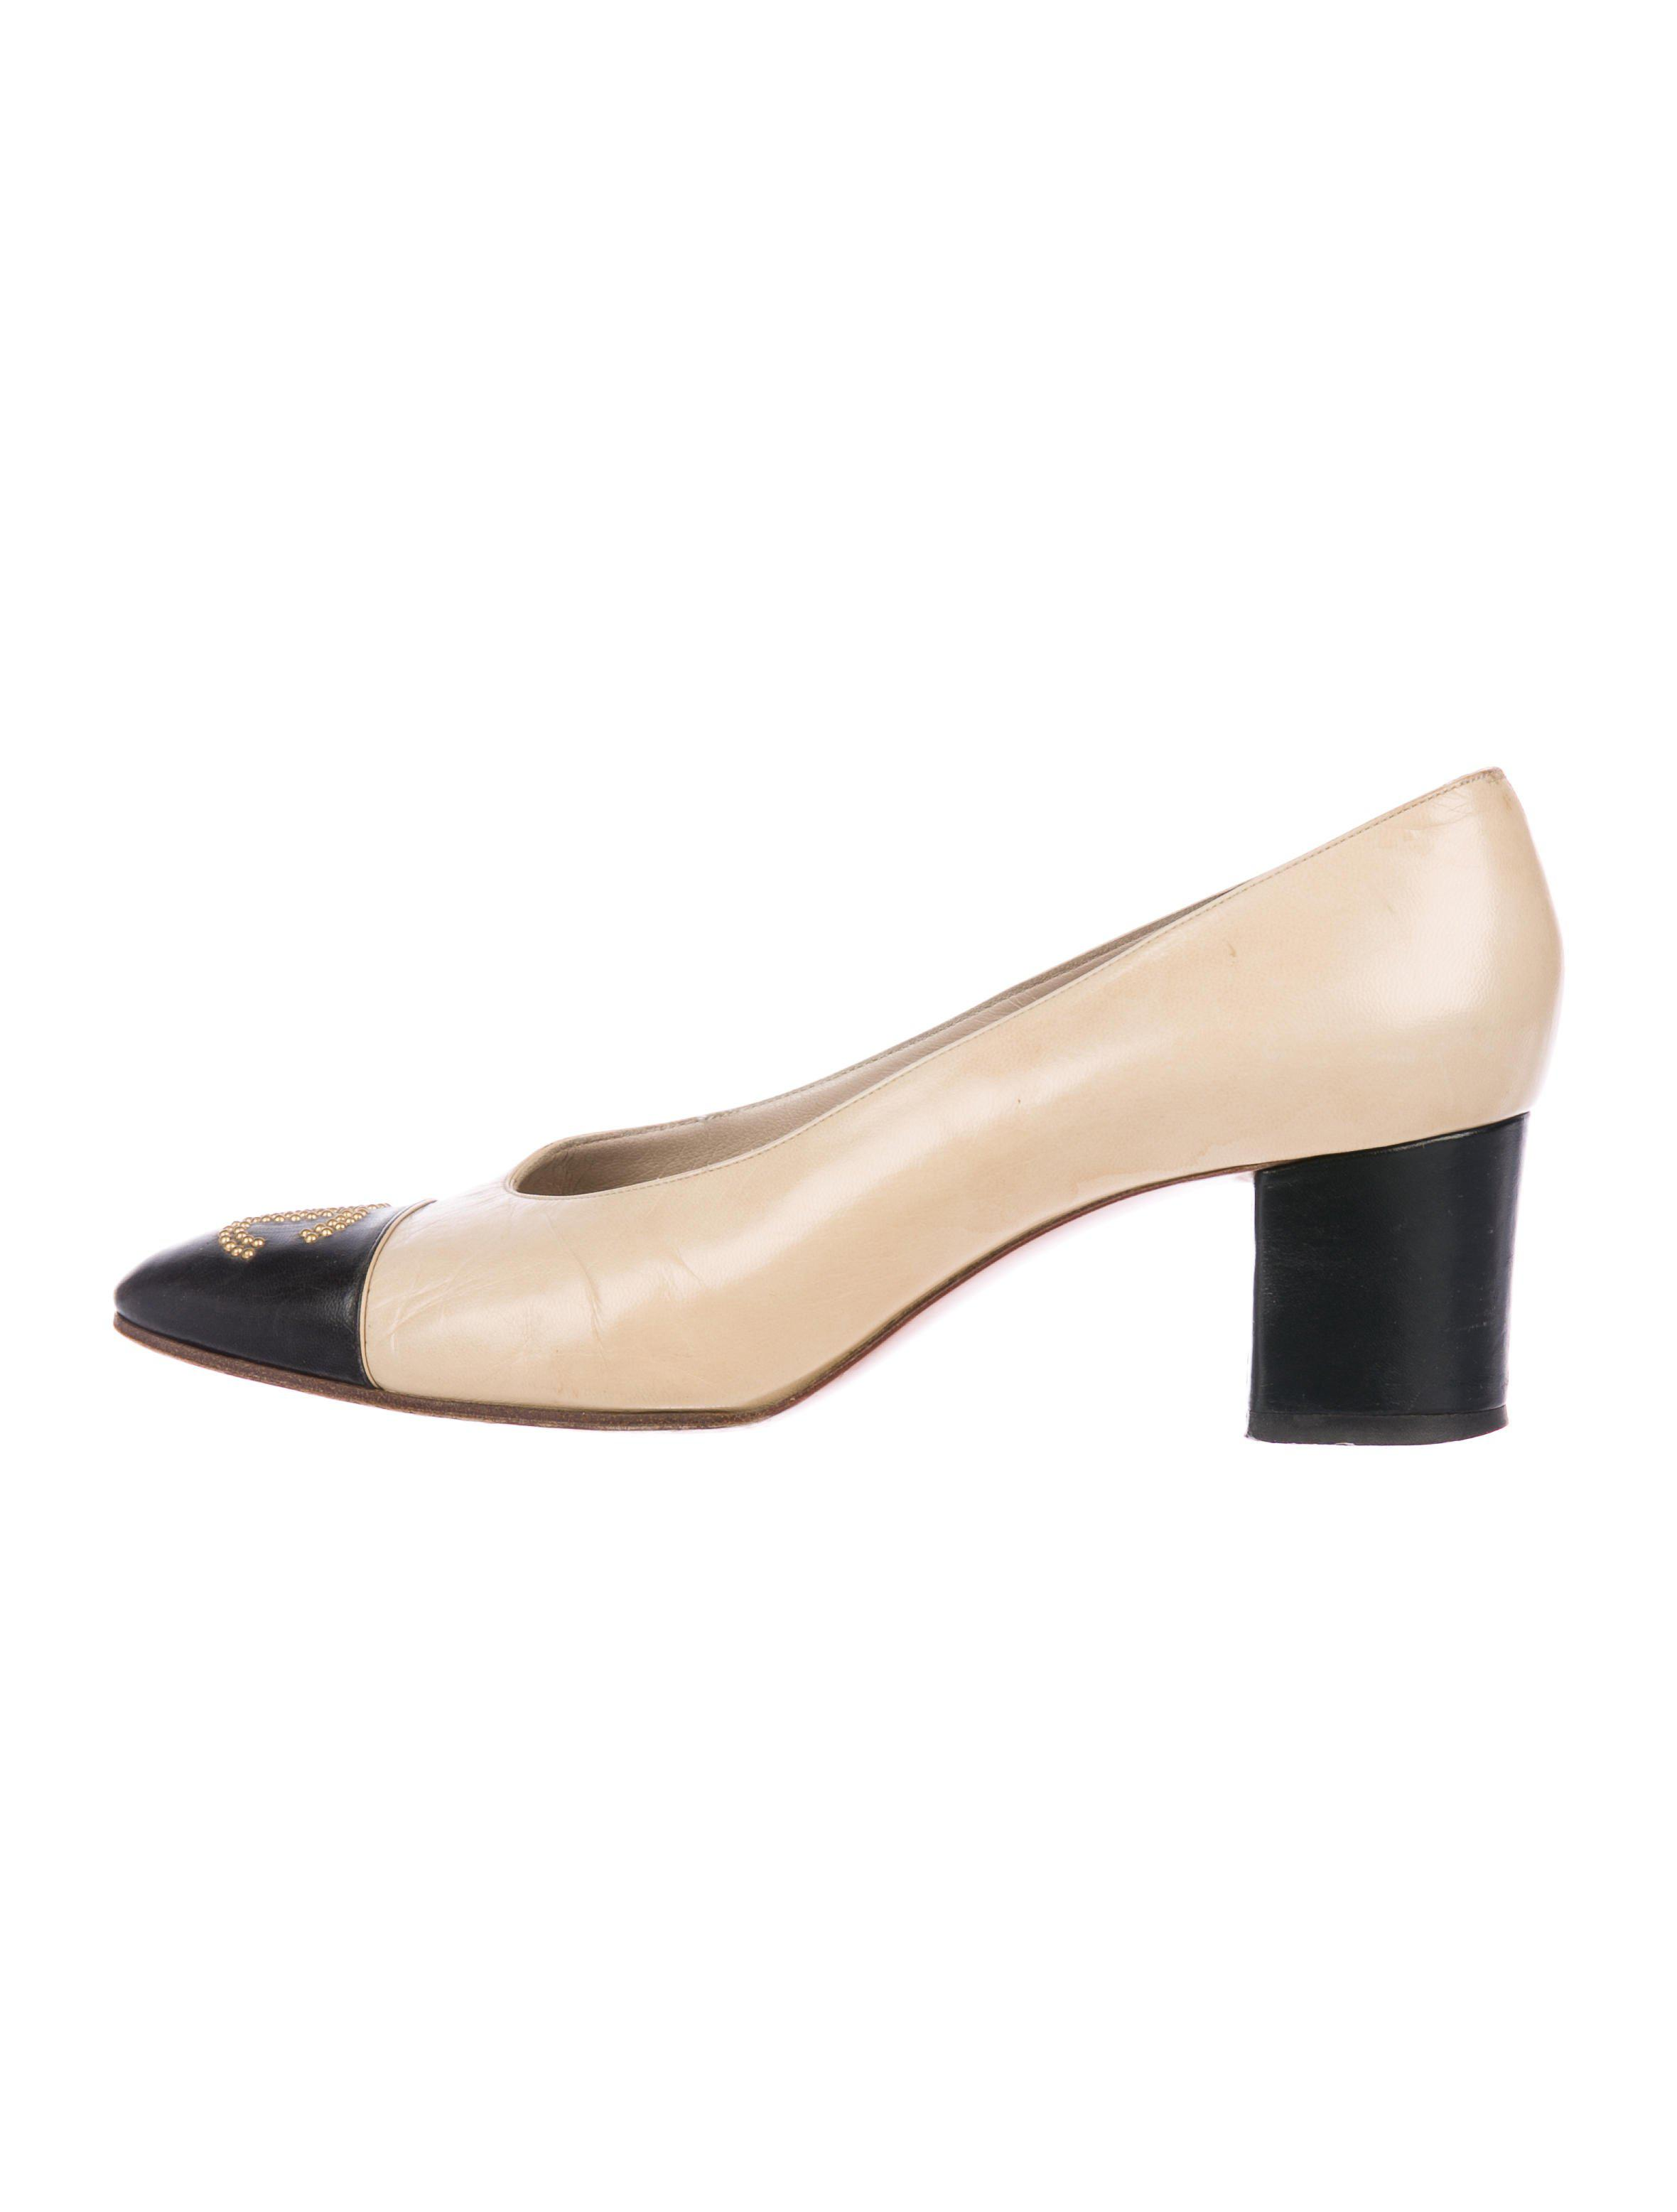 c8130f723b2c Lyst - Chanel Cc Cap-toe Leather Pumps Tan in Natural